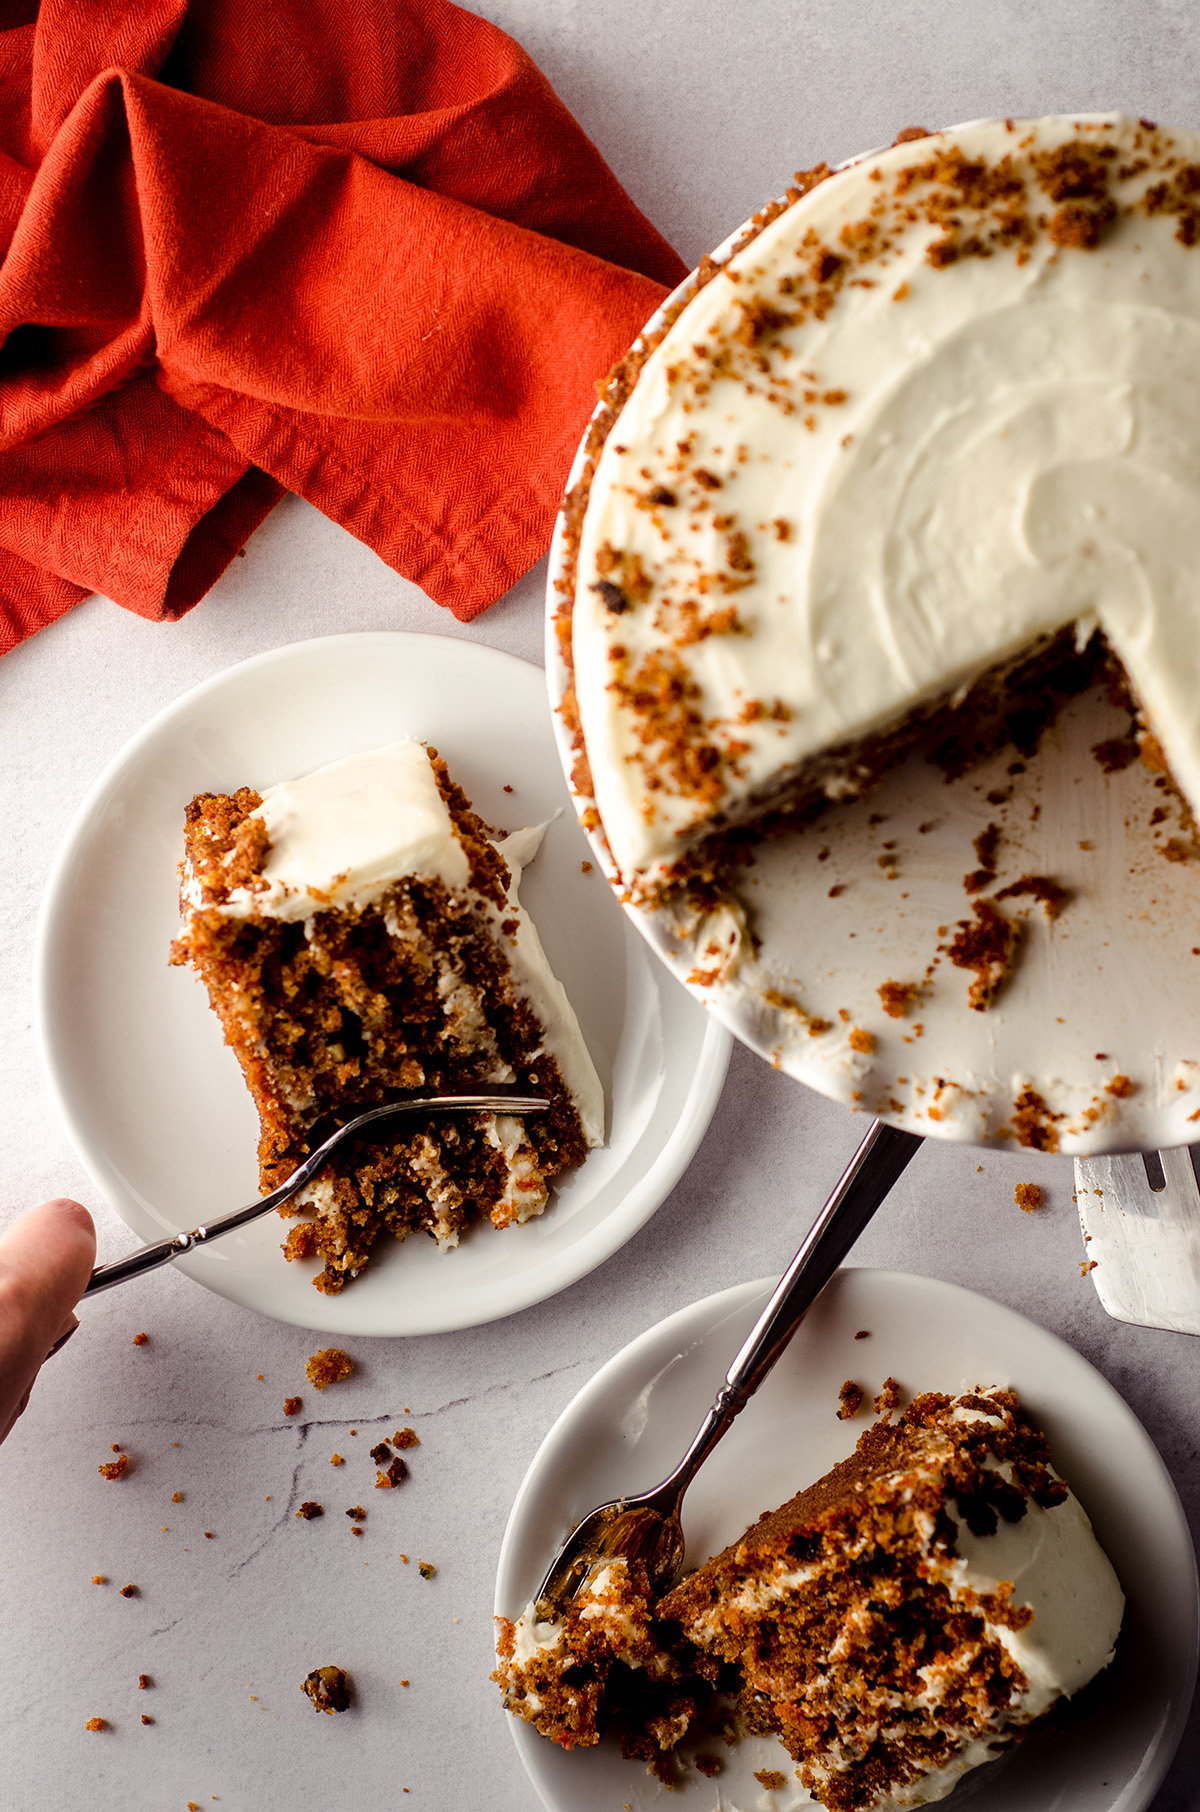 aerial photo of two slices of carrot walnut cake on plates and one has a fork digging into it for a bite